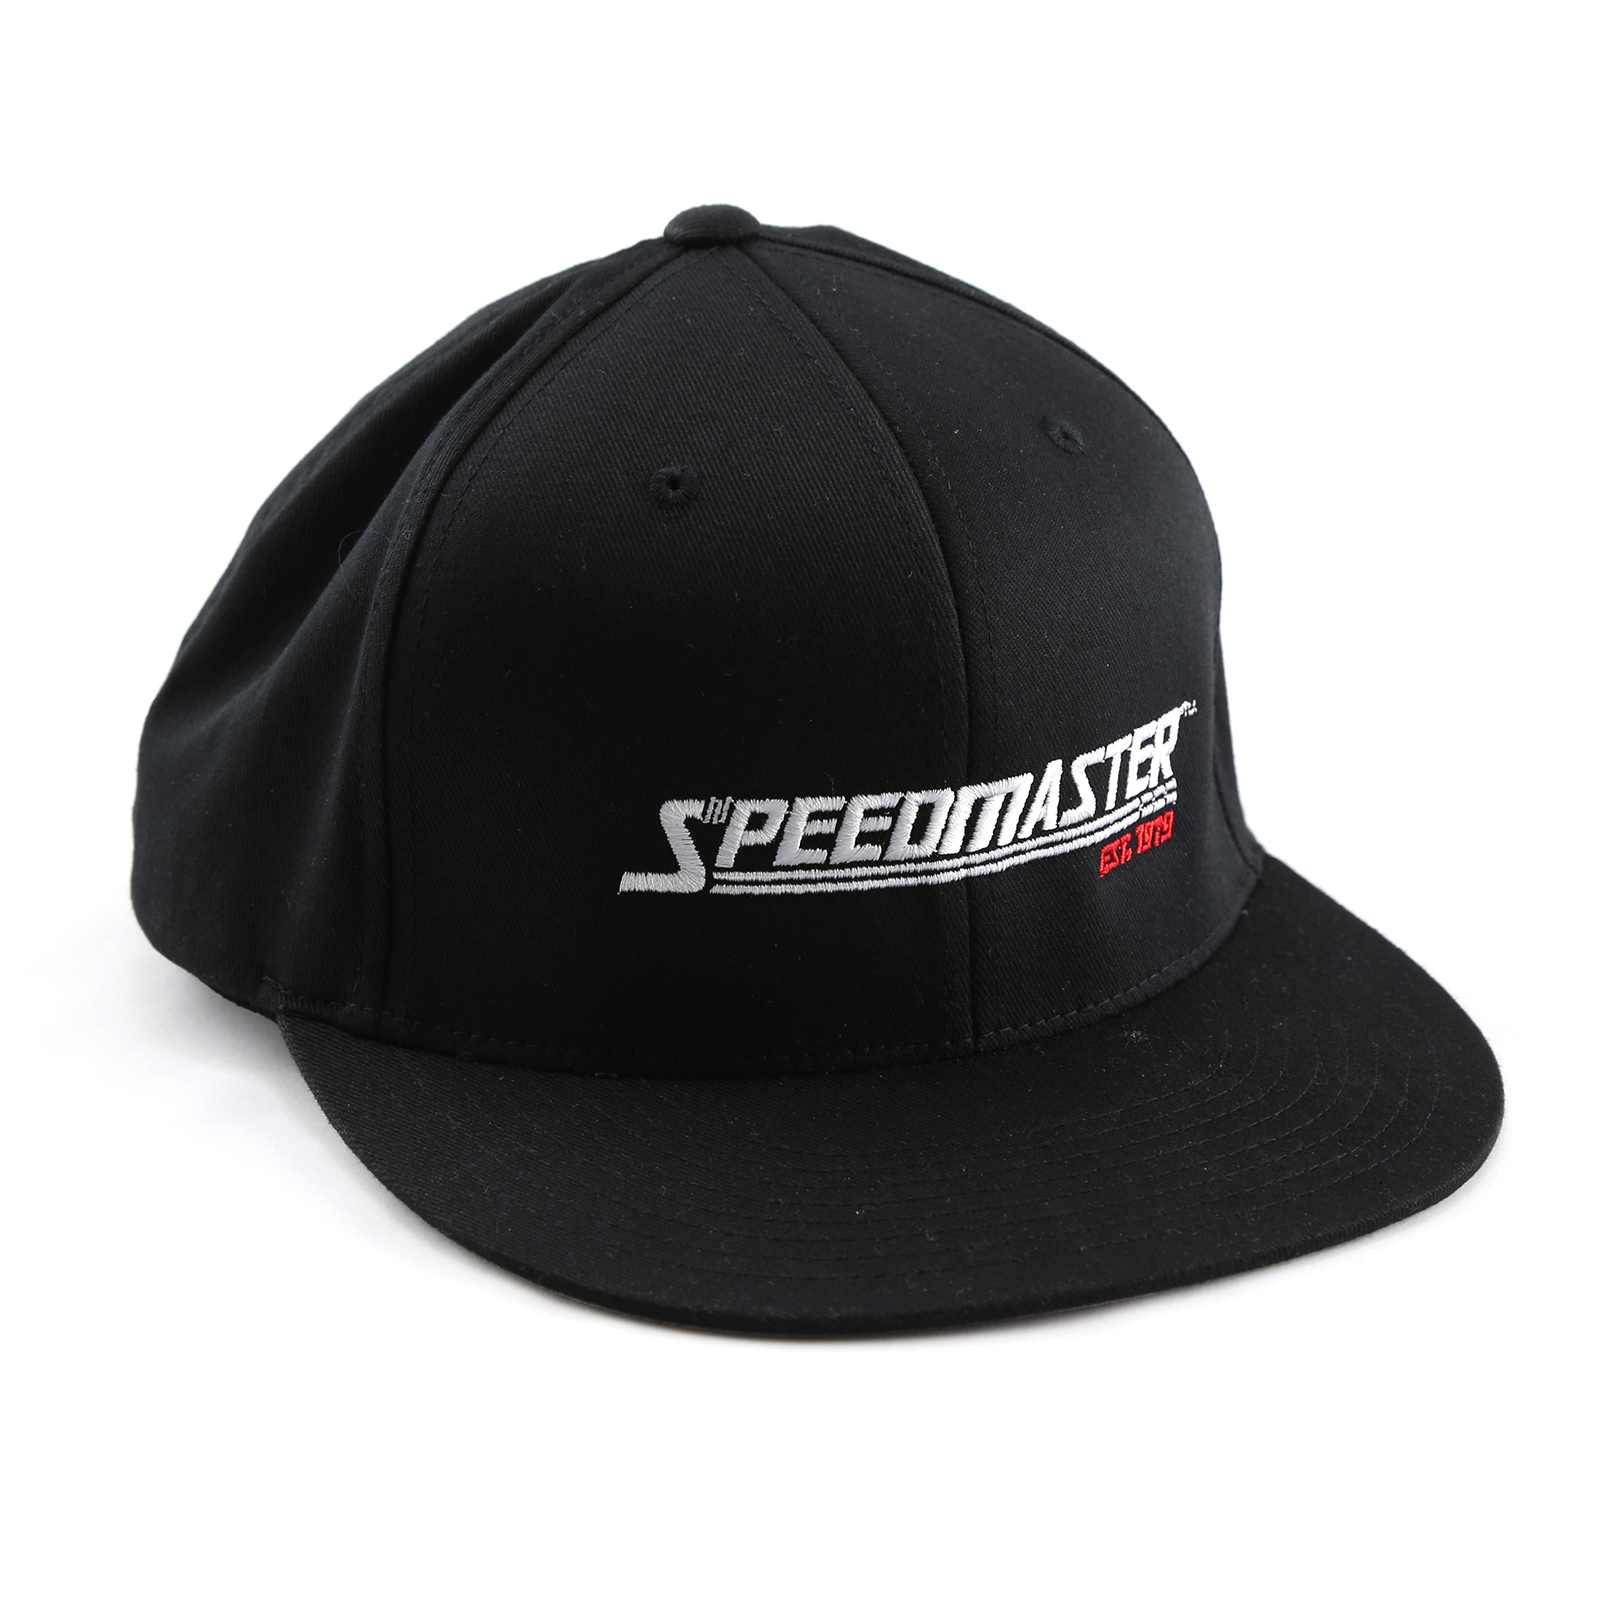 Speedmaster Team Hat Flex Fit Large L - X-Large XL